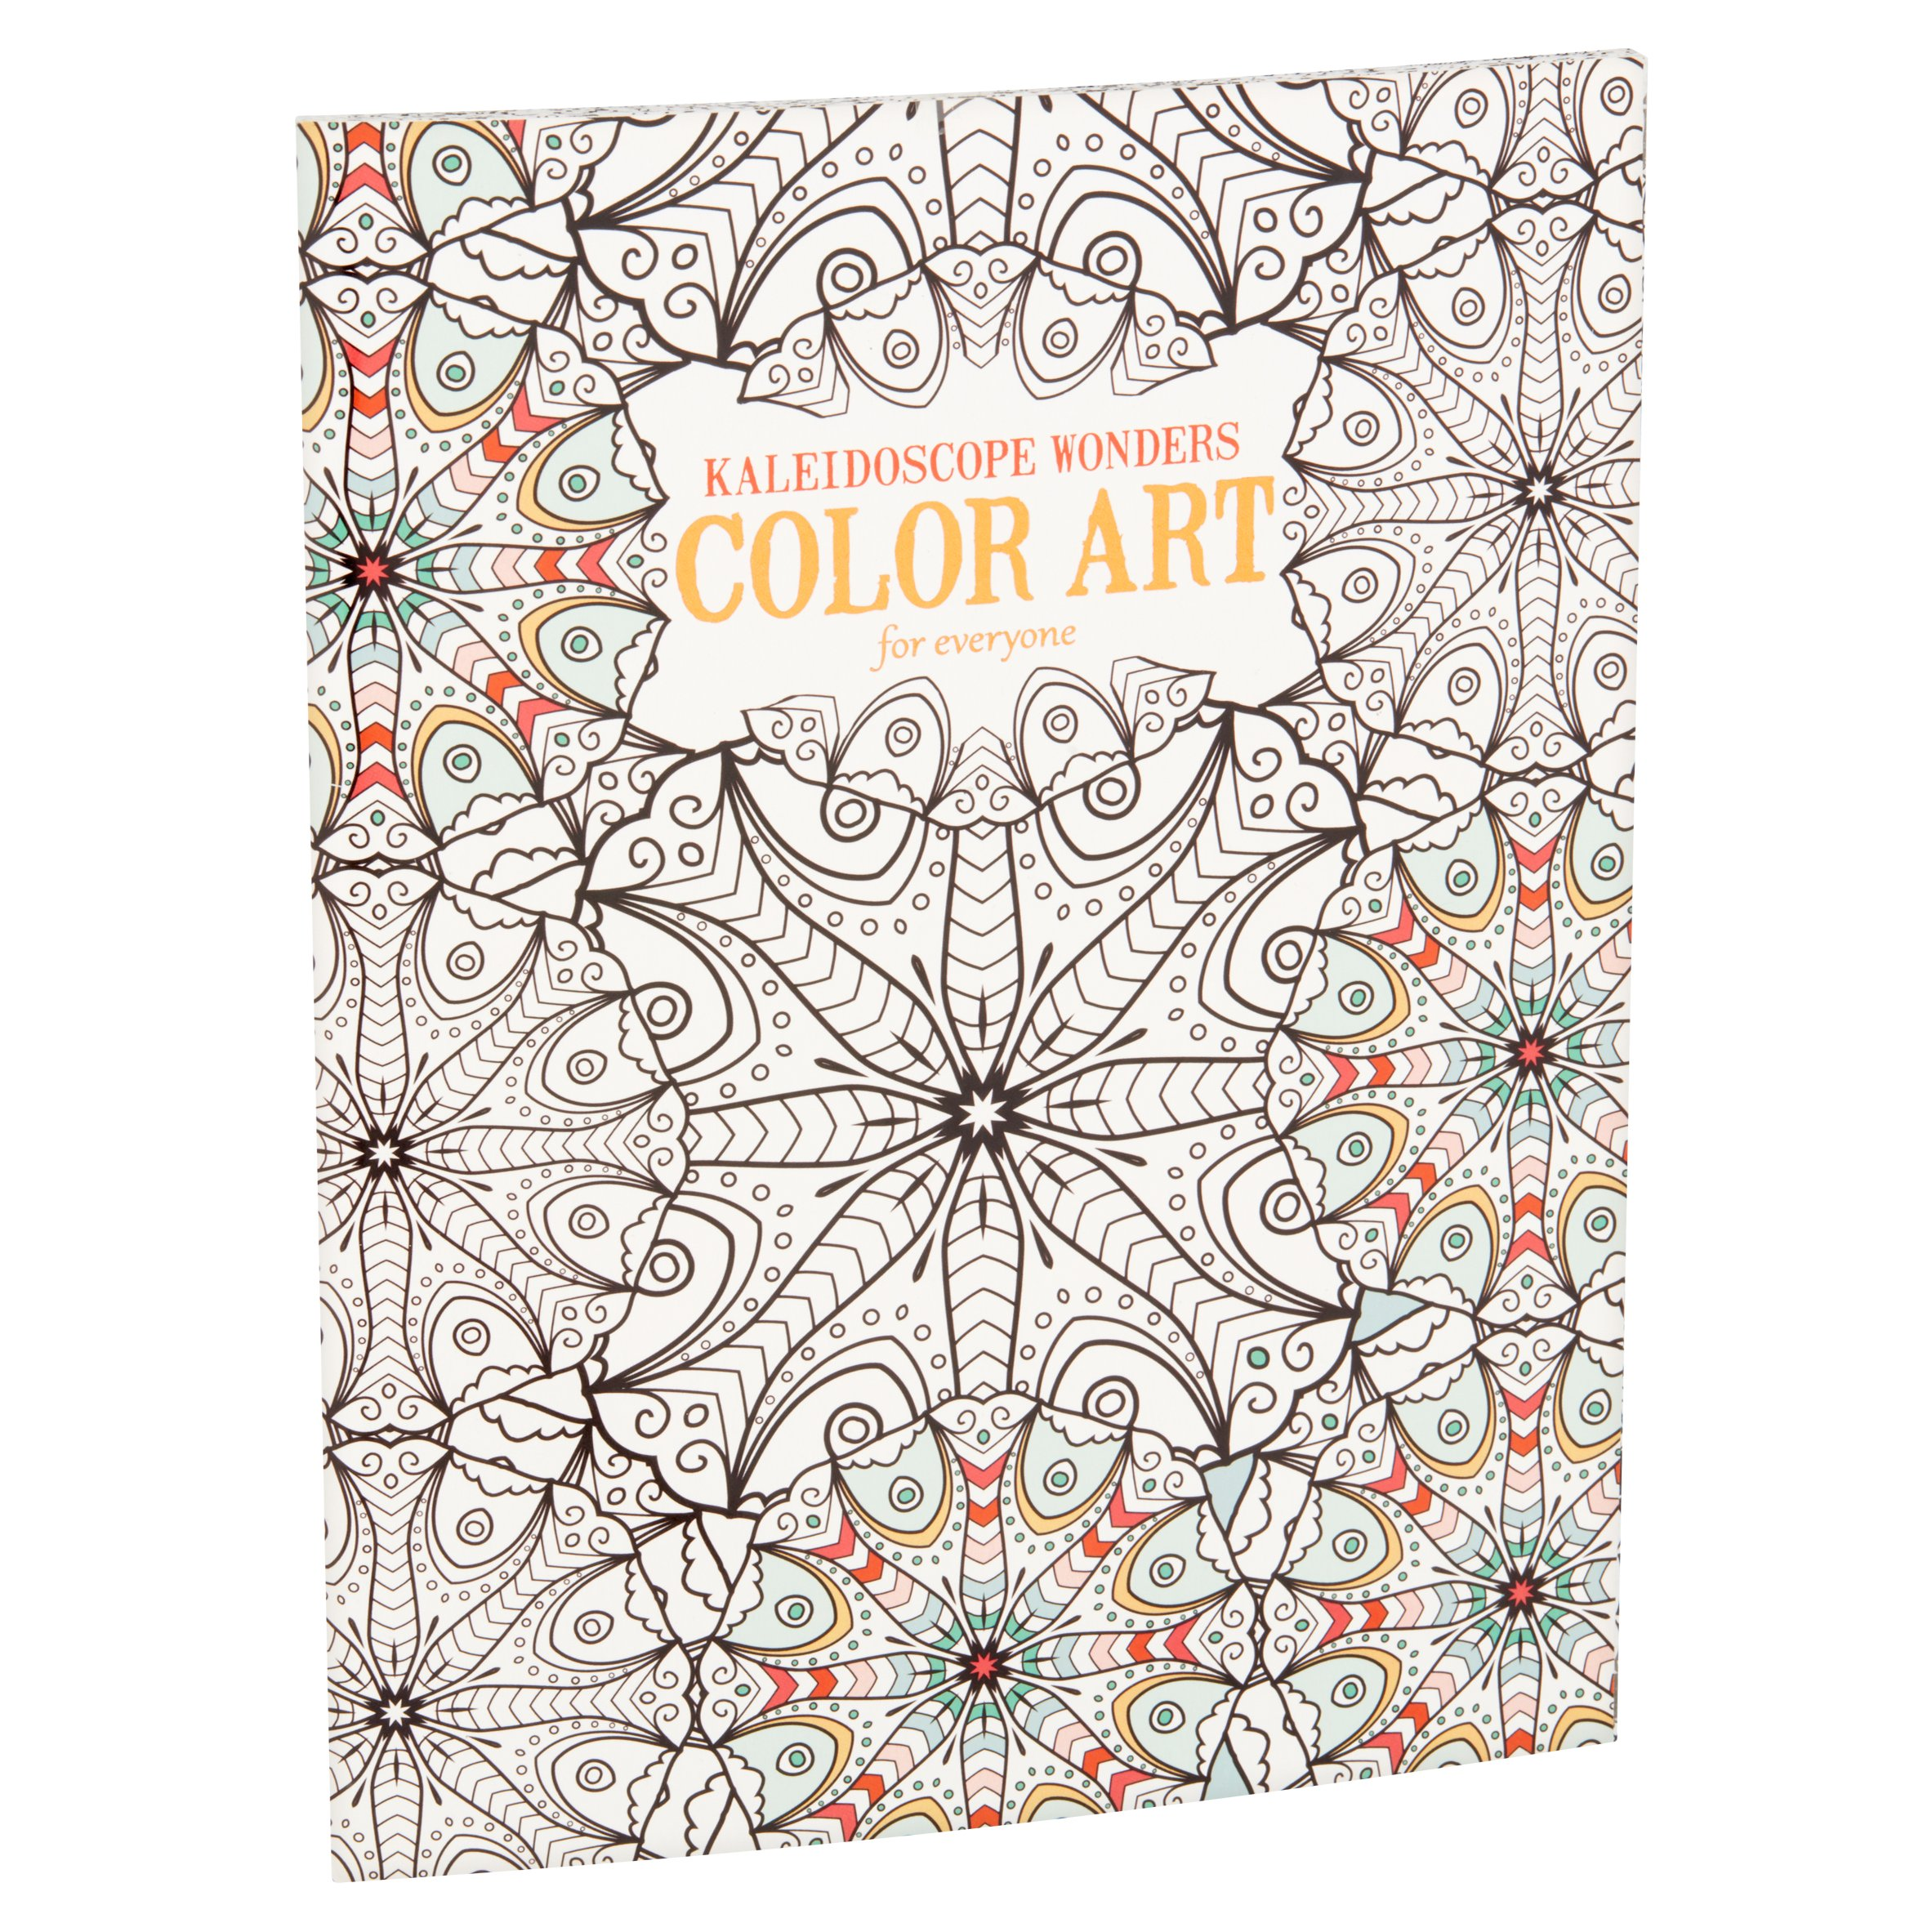 Kaleidoscope Wonders Color Art For Everyone Coloring Book